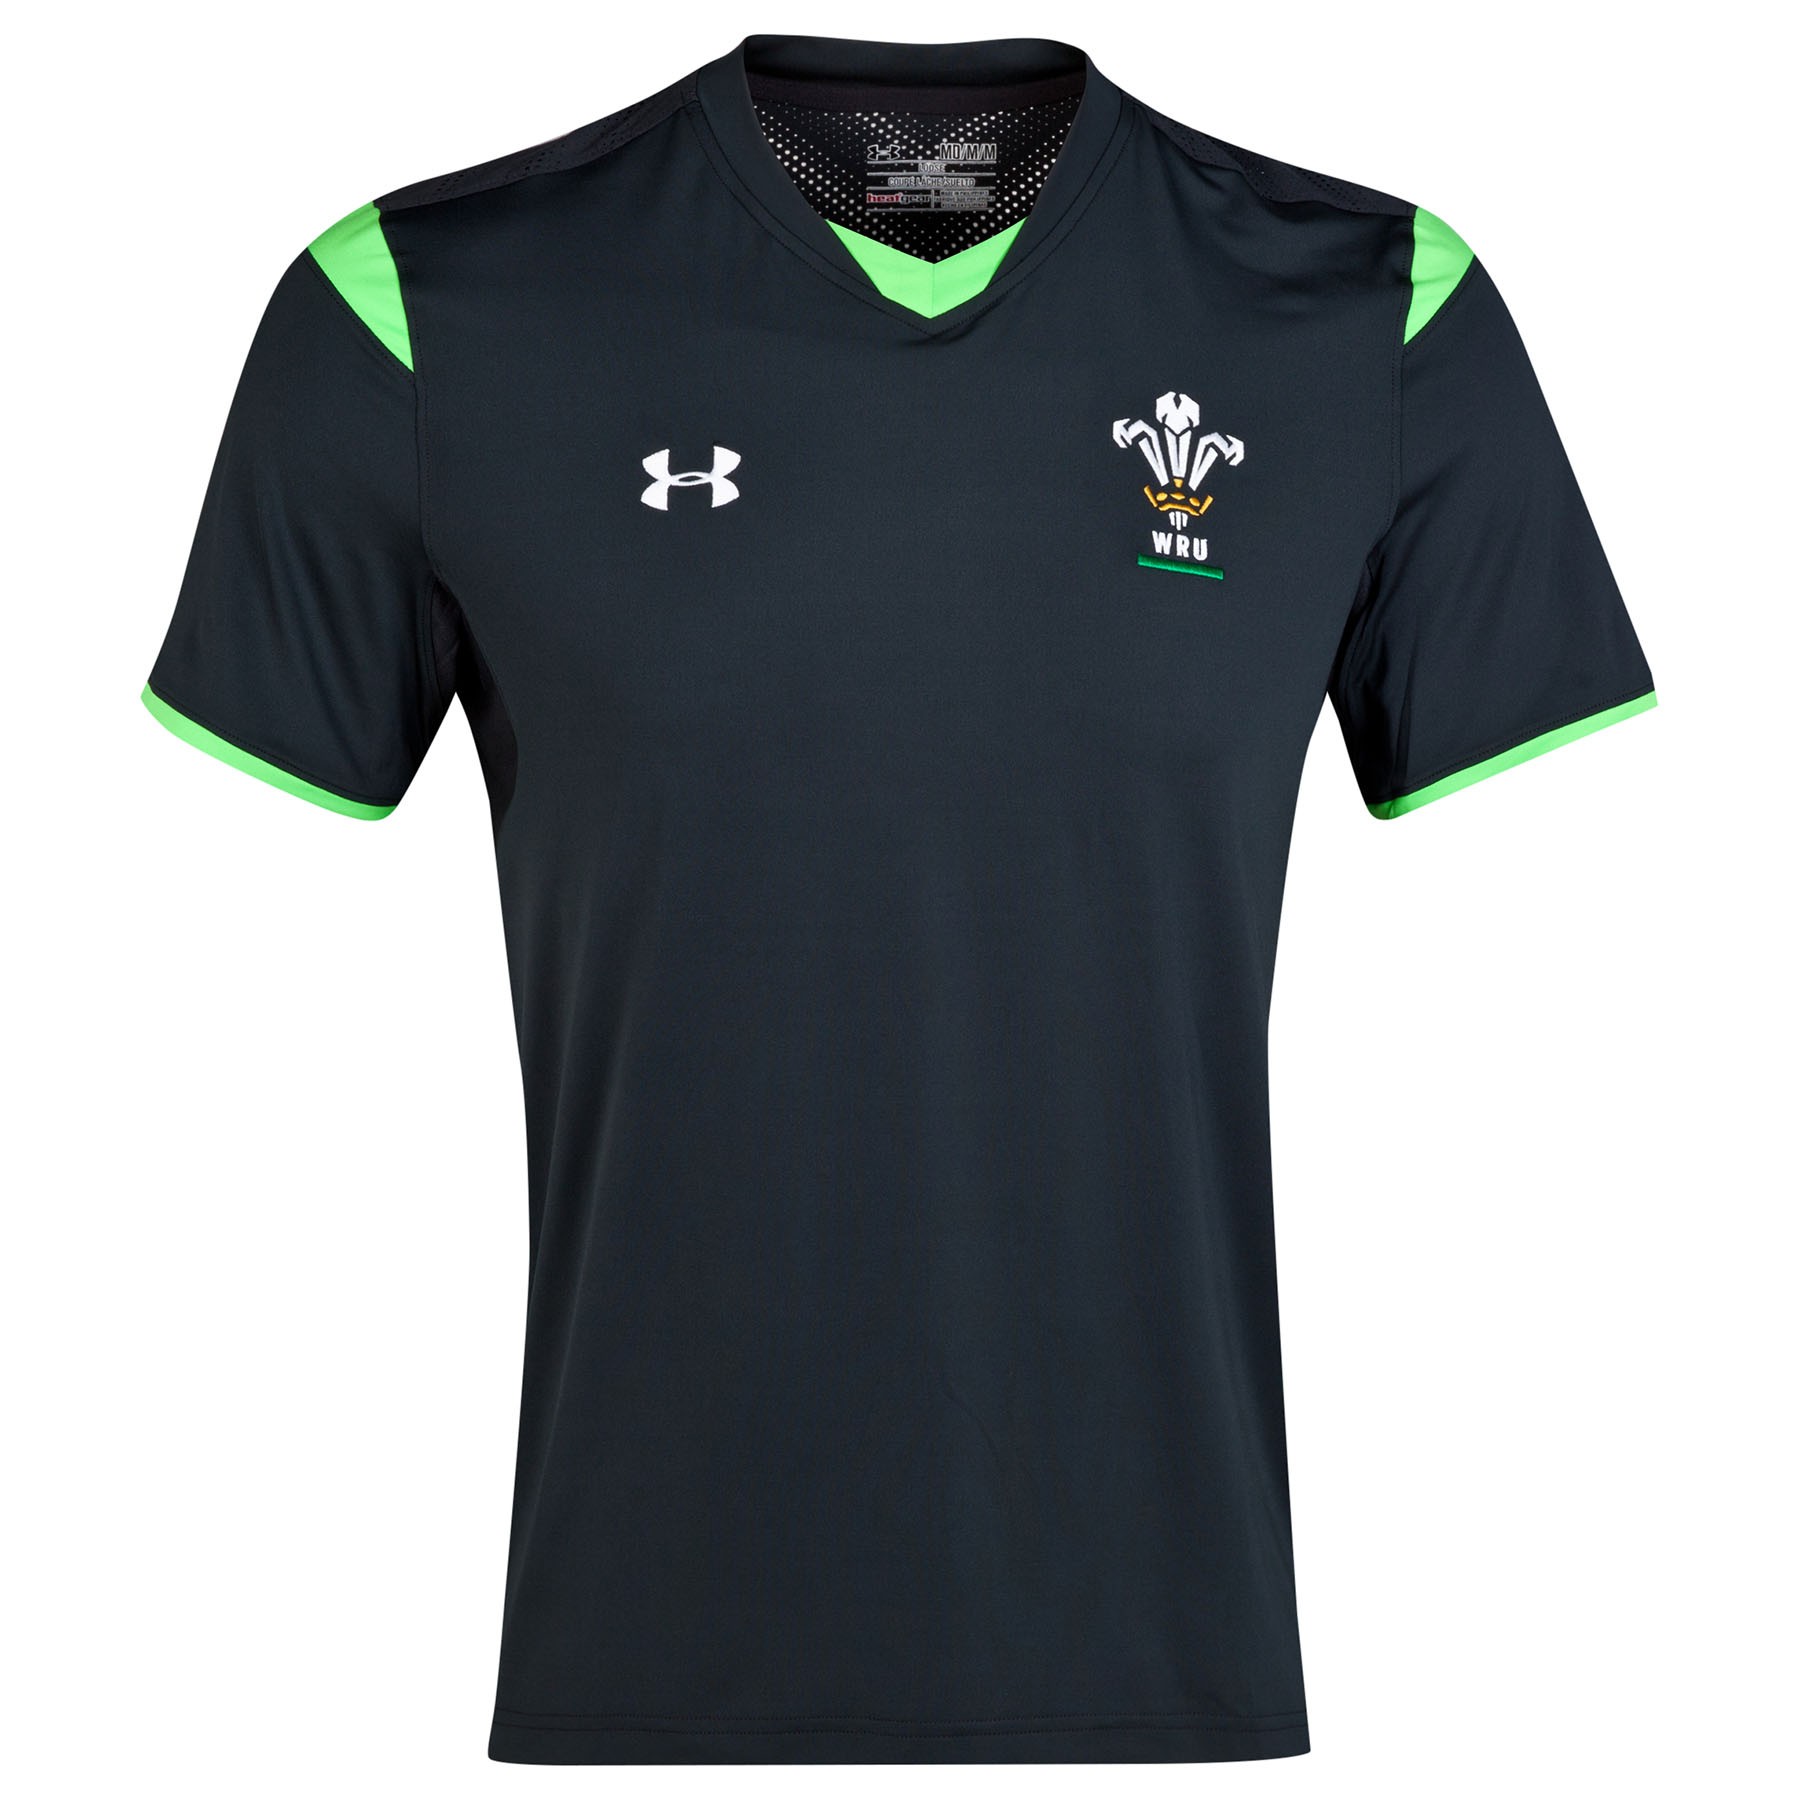 Wales Rugby Union Training SS Shirt Loose 2014/15 Black